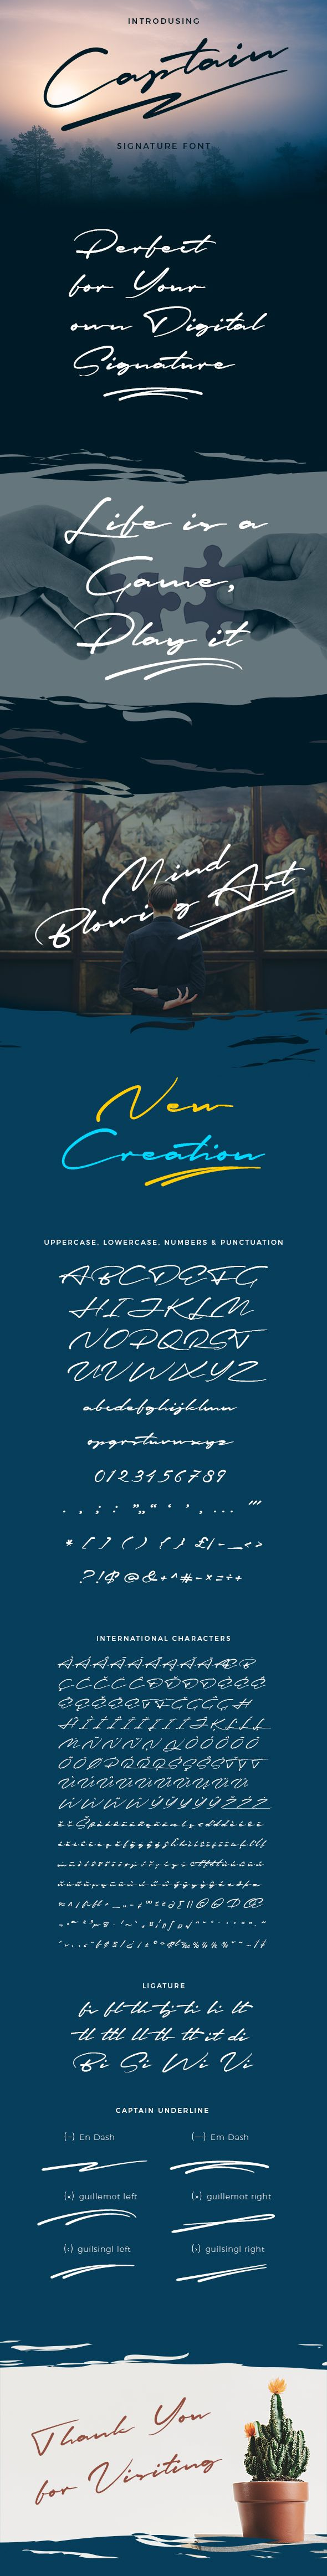 "Captain Signature Brush Font Captain"" is a Signature Brush Font based on an original idea by me. Suitable for any Graphic Designs such as T-shirt and Poster Design, Branding materials, Logo and all Stationery packages, Element design, Wedding, Event, Badges, Sticker, and Awesome work, etc."